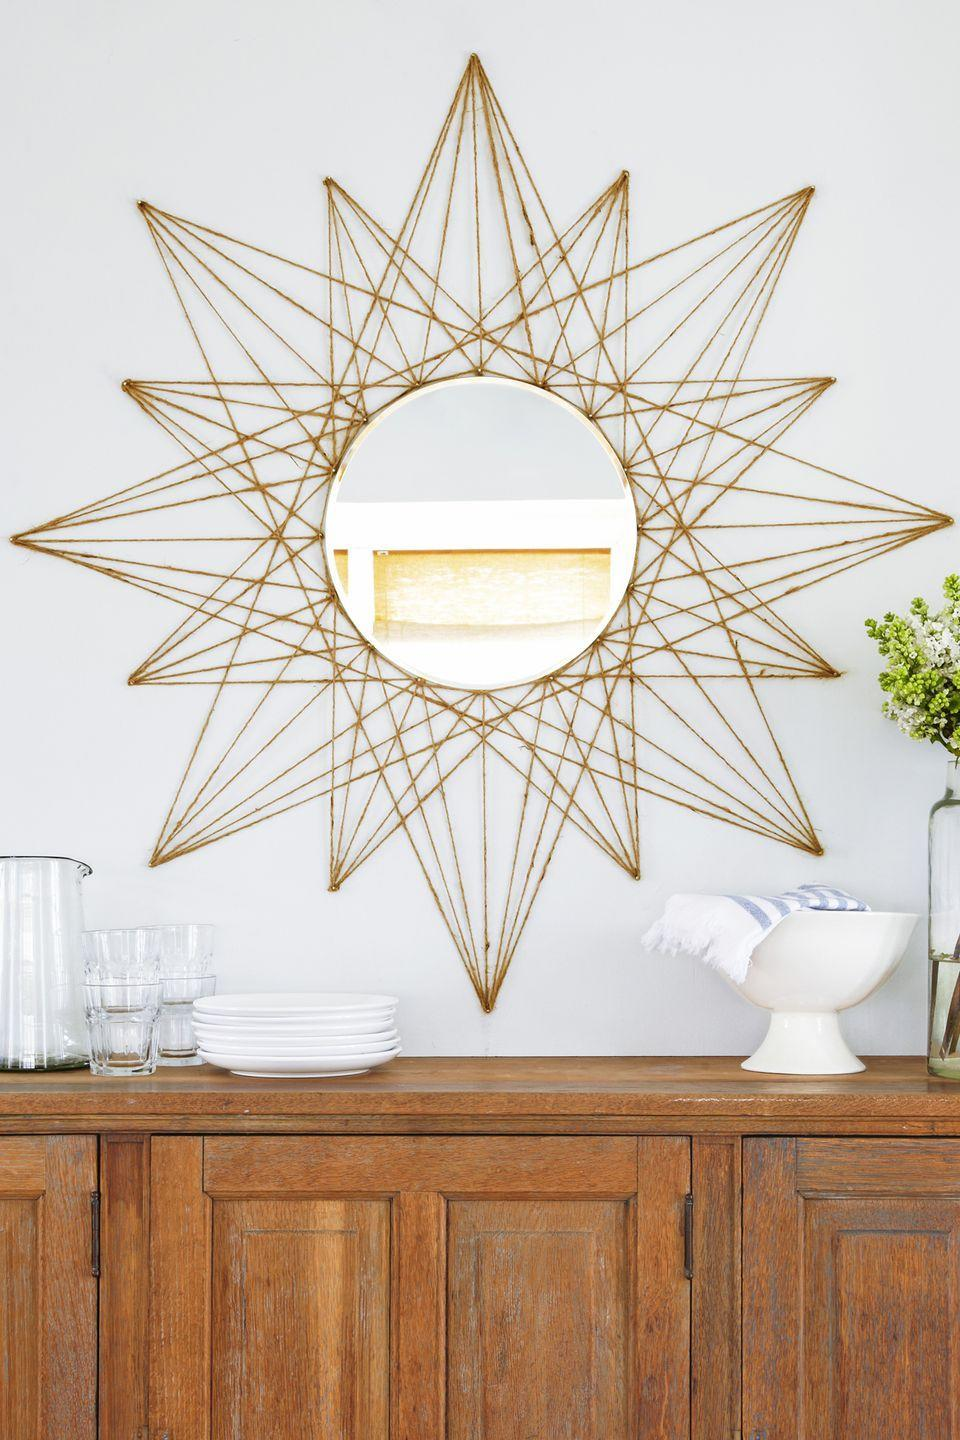 """<p>This stunning star mirror looks intricate, but it's surprisingly easy to DIY if you follow the step-by-step guide. An added bonus: It costs less than $25 to make. </p><p><em><a href=""""https://www.goodhousekeeping.com/home/decorating-ideas/a47625/diy-rope-star-mirror/"""" rel=""""nofollow noopener"""" target=""""_blank"""" data-ylk=""""slk:Get the tutorial »"""" class=""""link rapid-noclick-resp"""">Get the tutorial »</a></em></p>"""